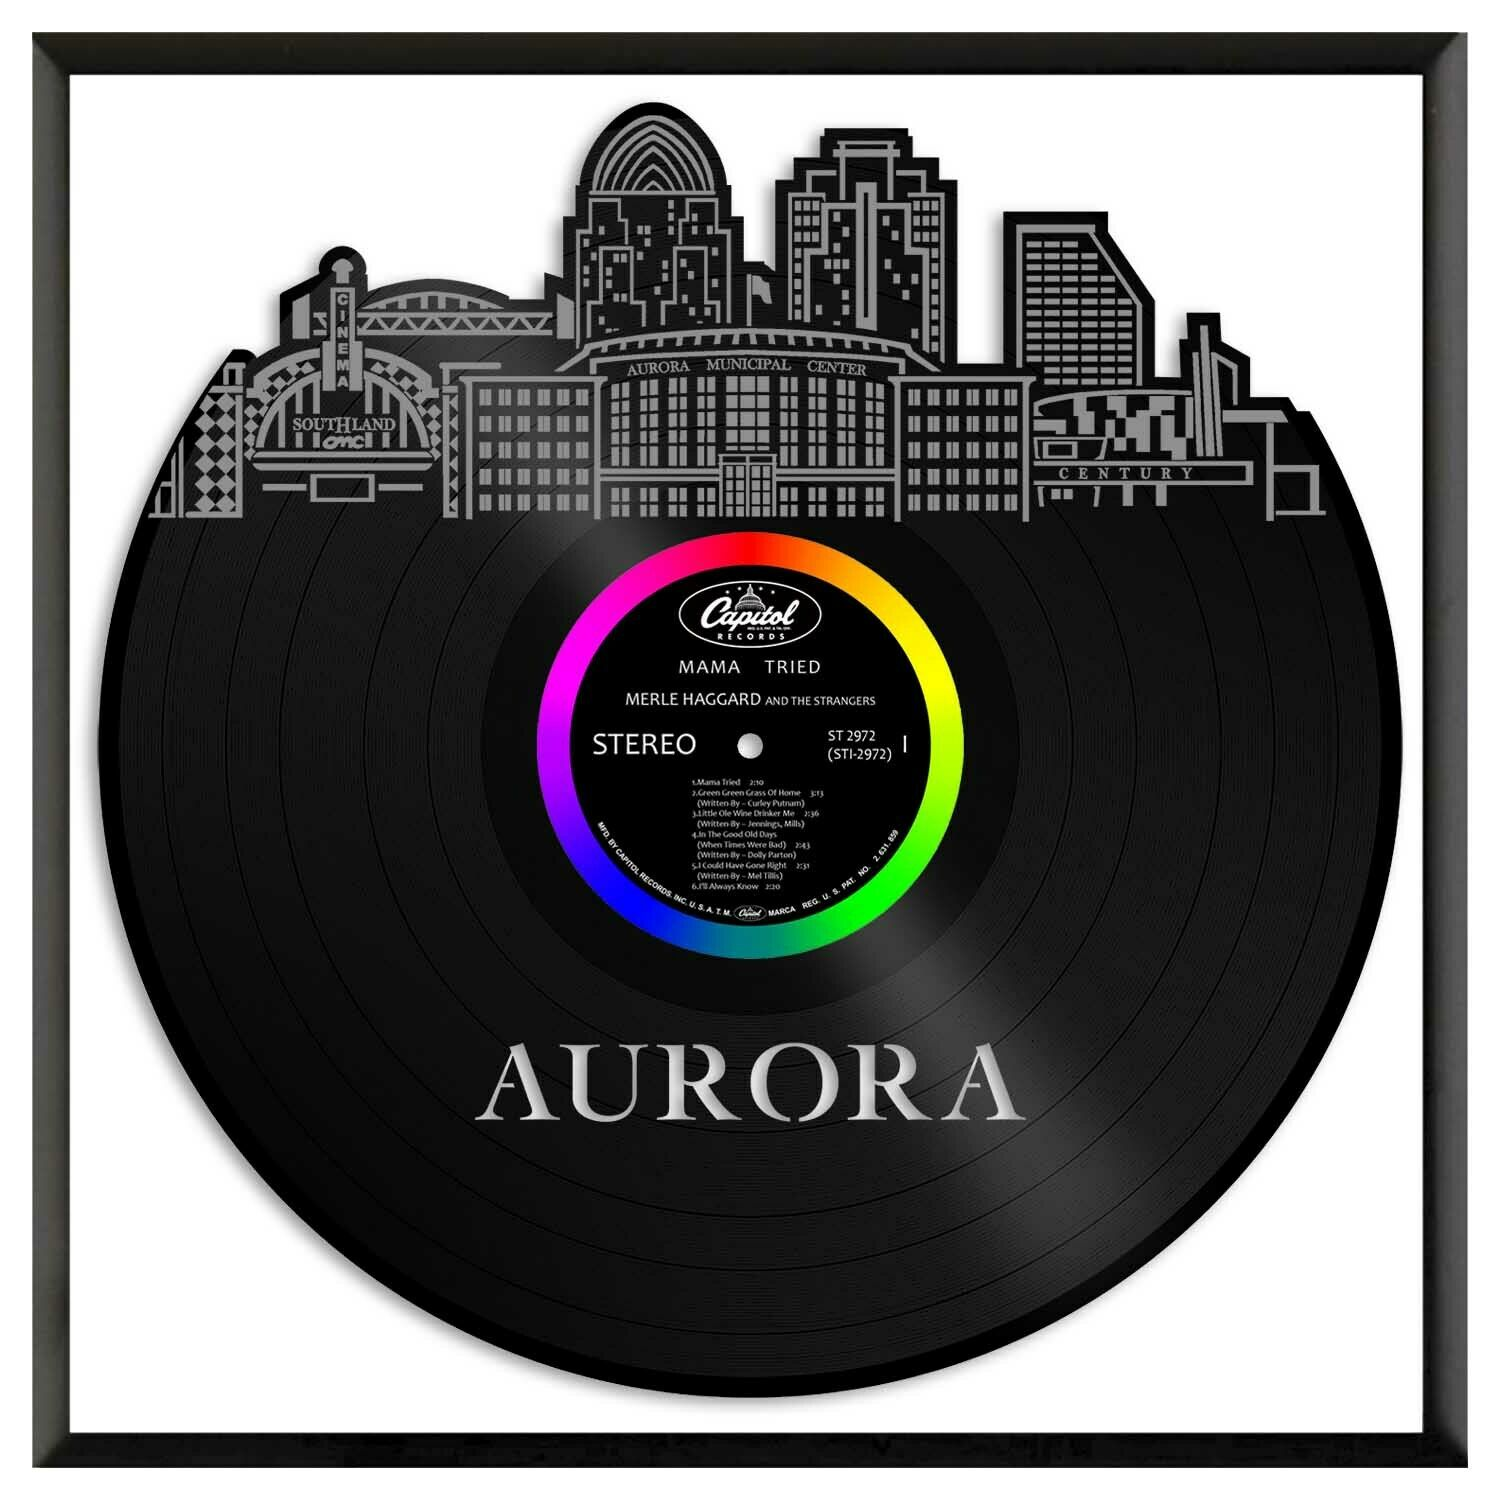 Aurora CO Vinyl Wall Art Cityscape Souvenir Anniversary Home Decoration Framed